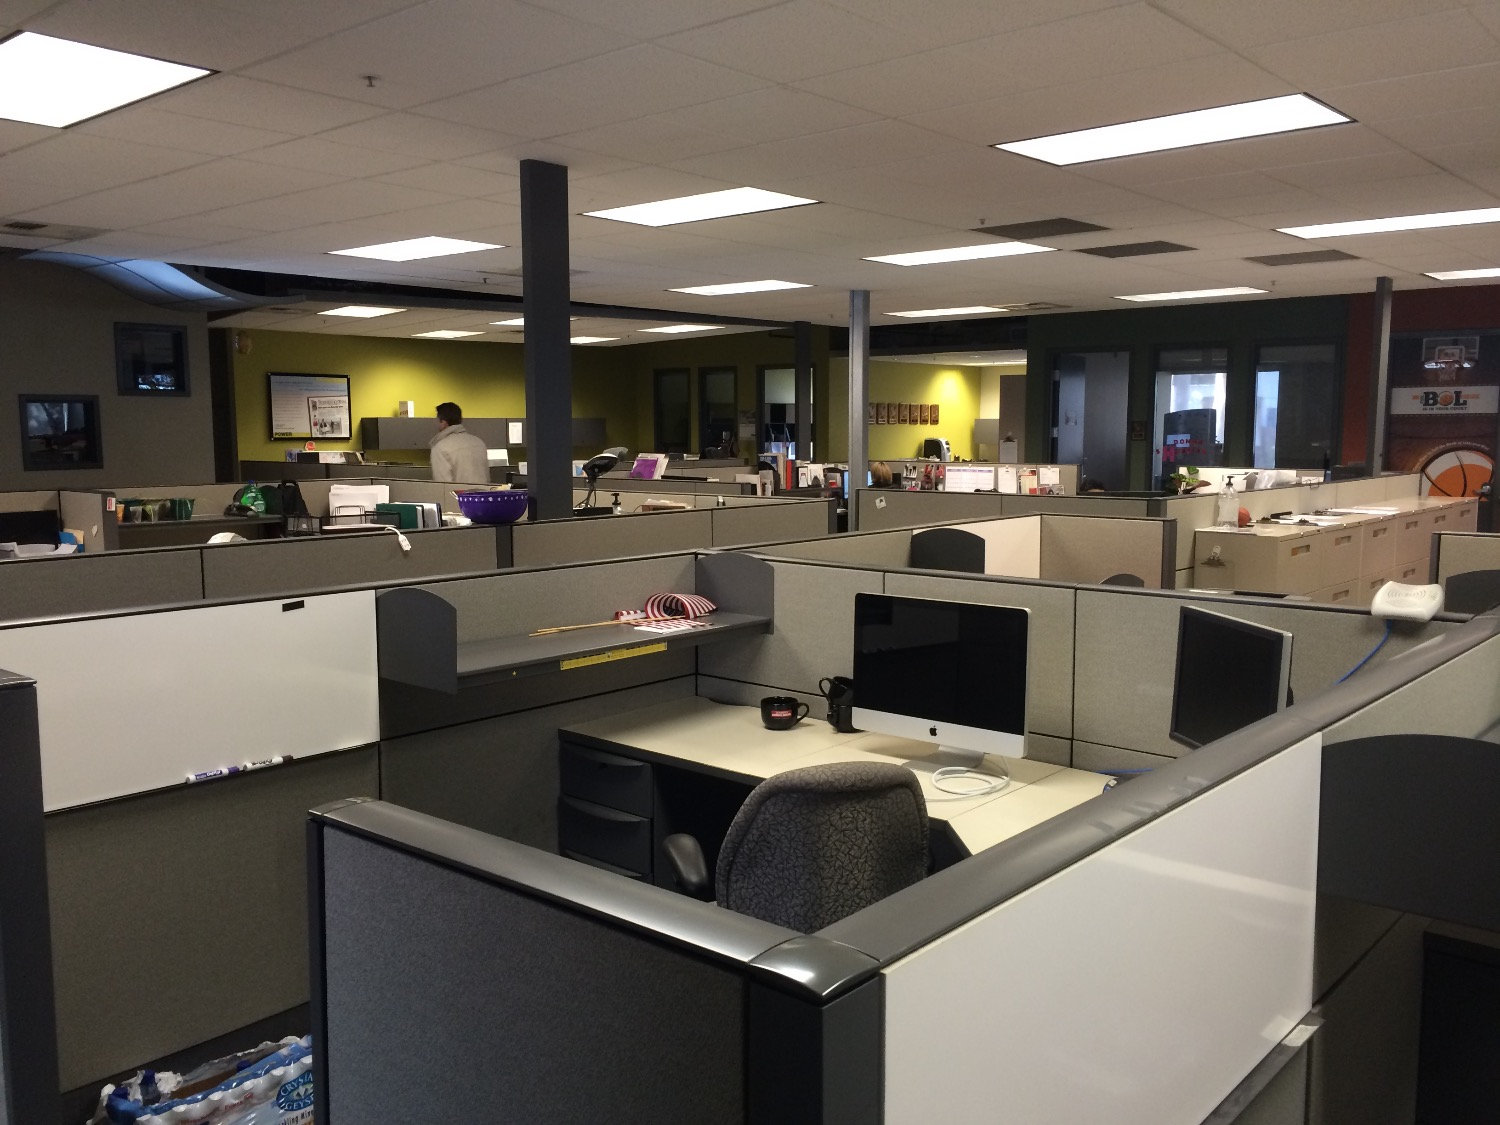 Cubicle Tear Down and Build